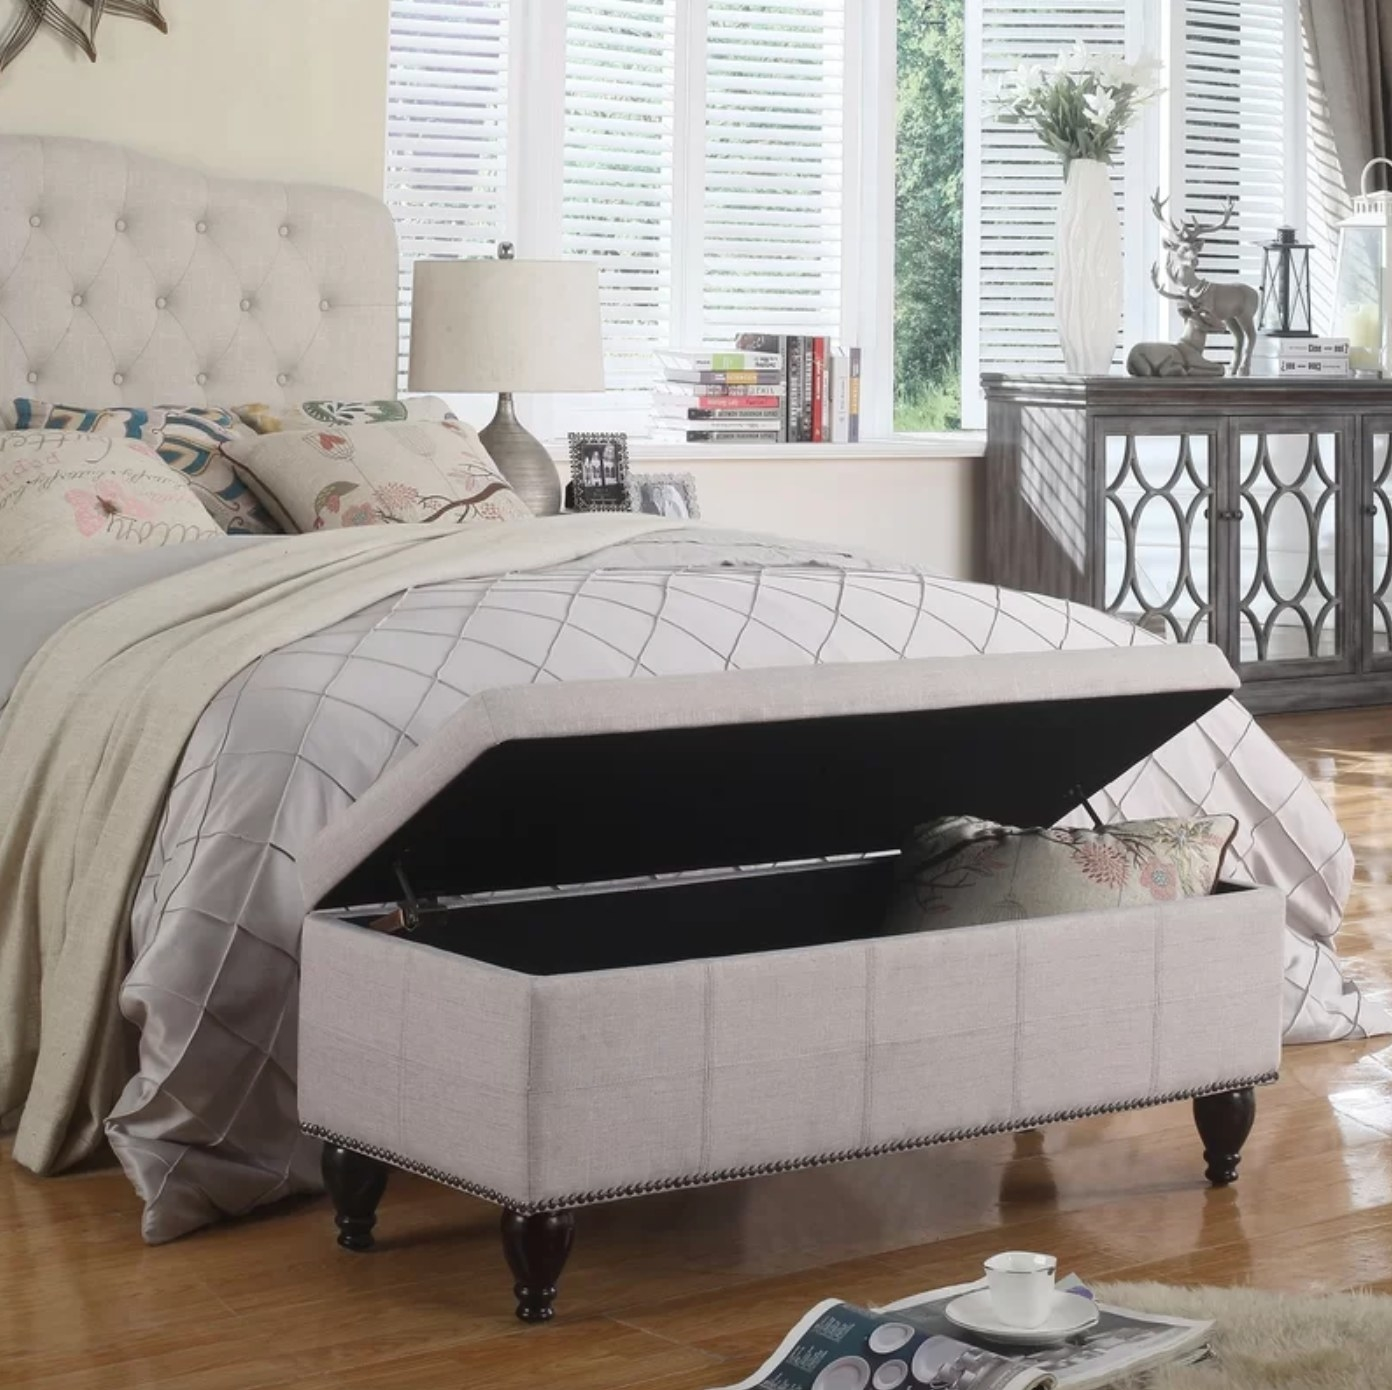 The upholstered storage bench in beige